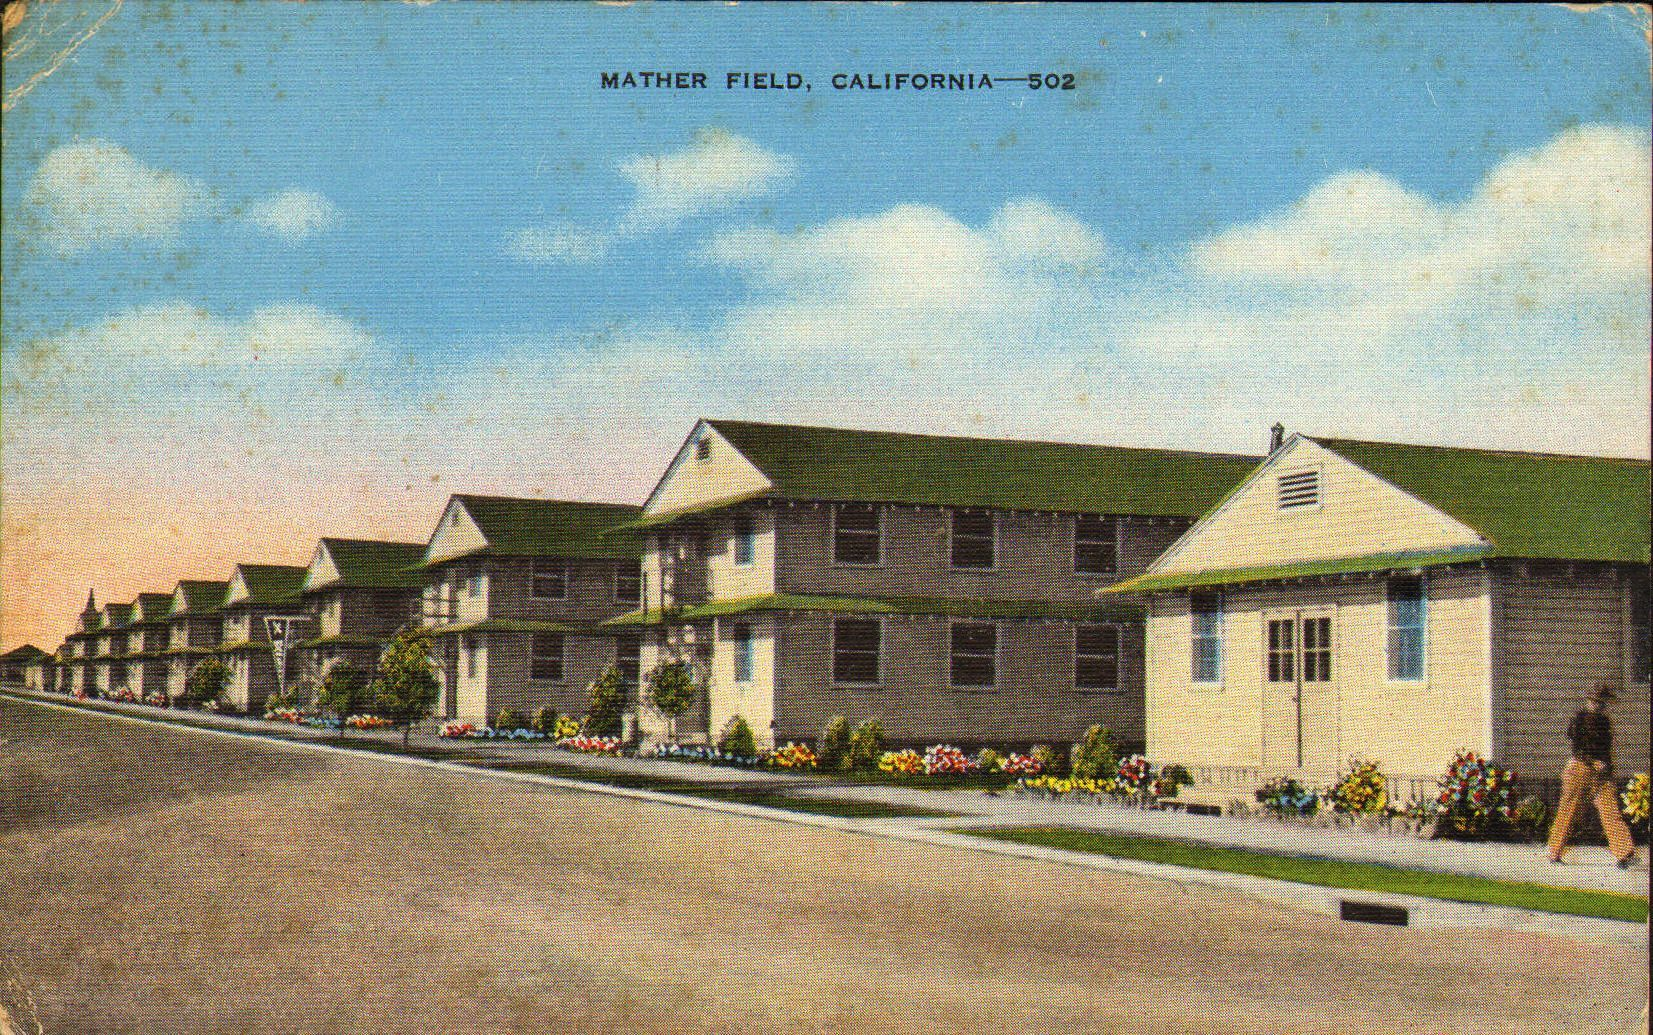 Mather Air Force Base is a closed United States Air Force Base located 12 miles east of Sacramento, in the present-day city of Rancho Cordova on the south side of U.S. Route 50 in Sacramento County, California.